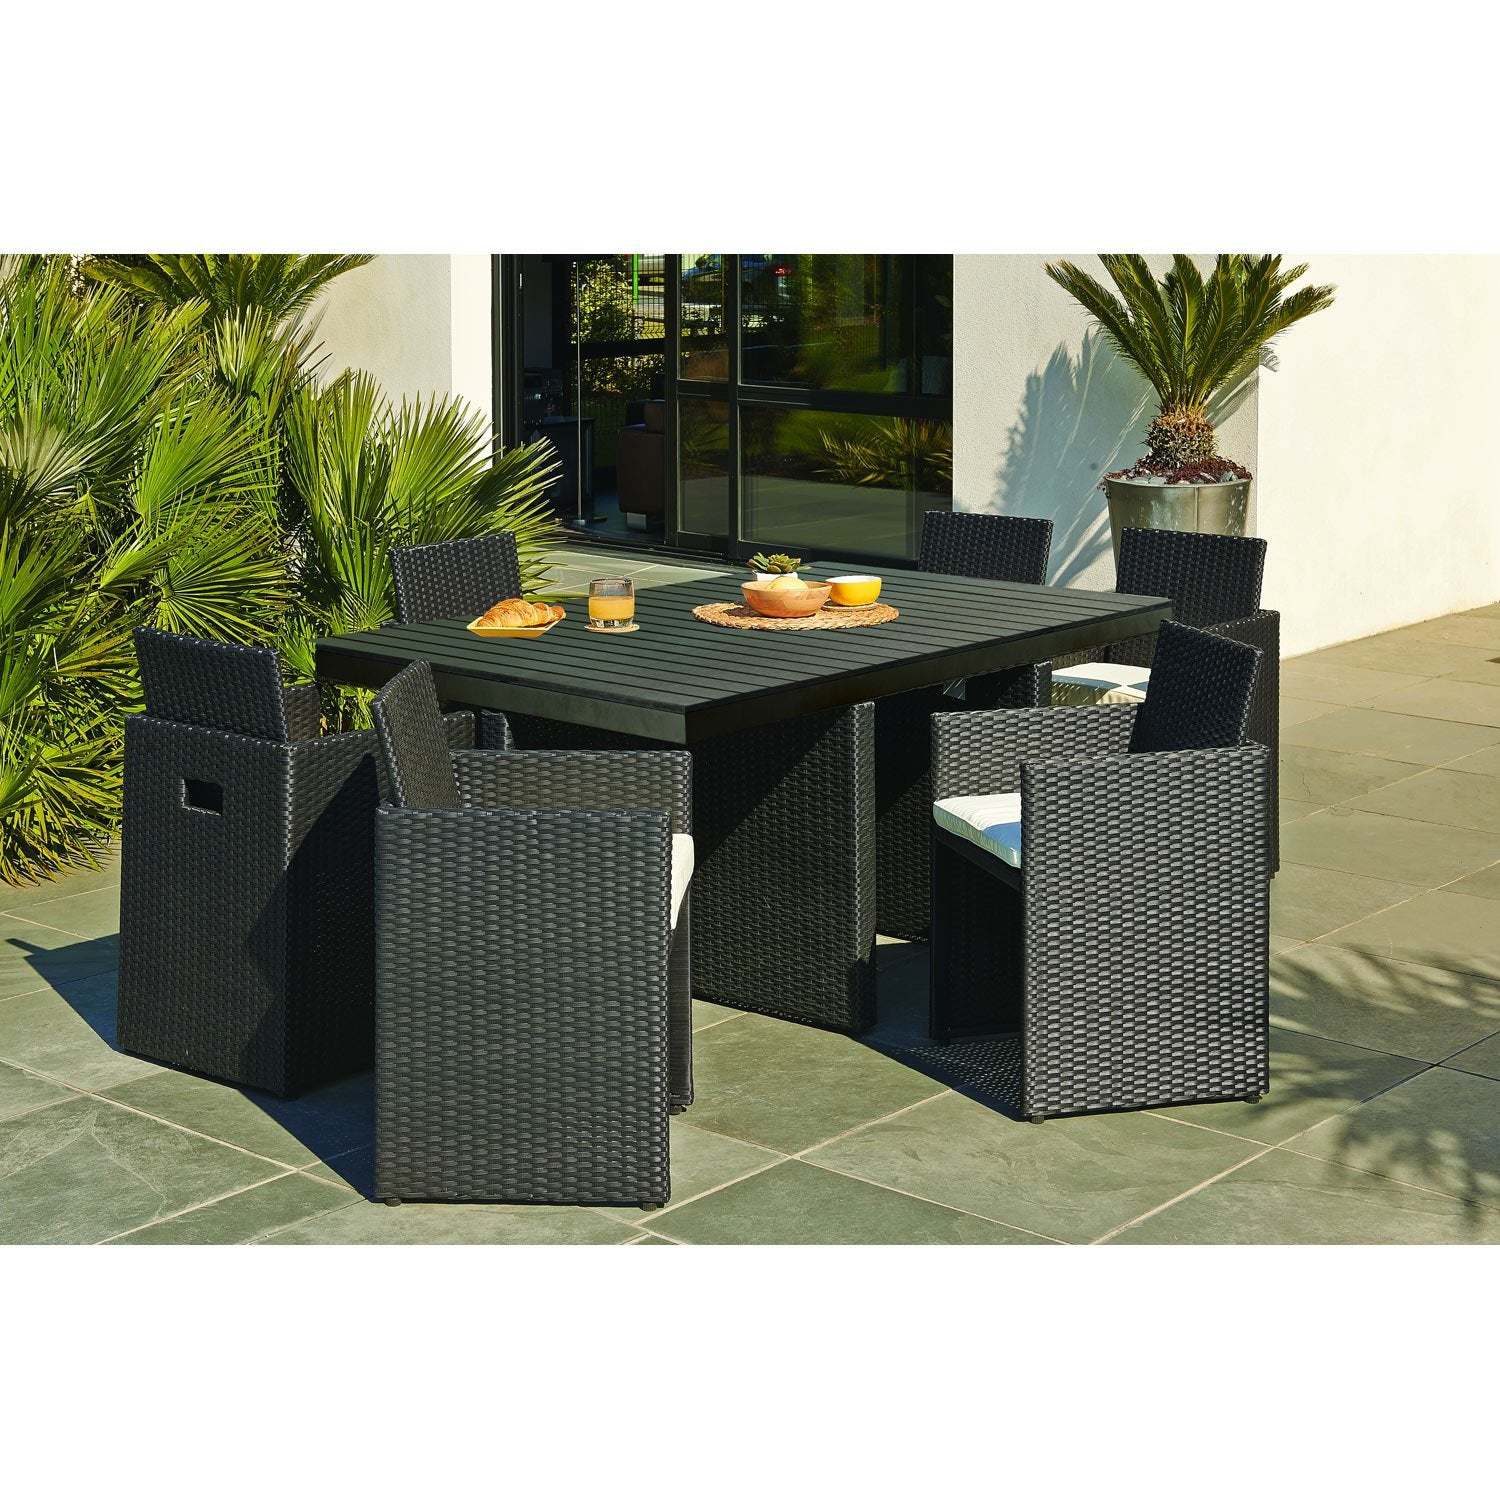 Salon de jardin encastrable r sine tress e noir 1 table - Sillones de mimbre leroy merlin ...